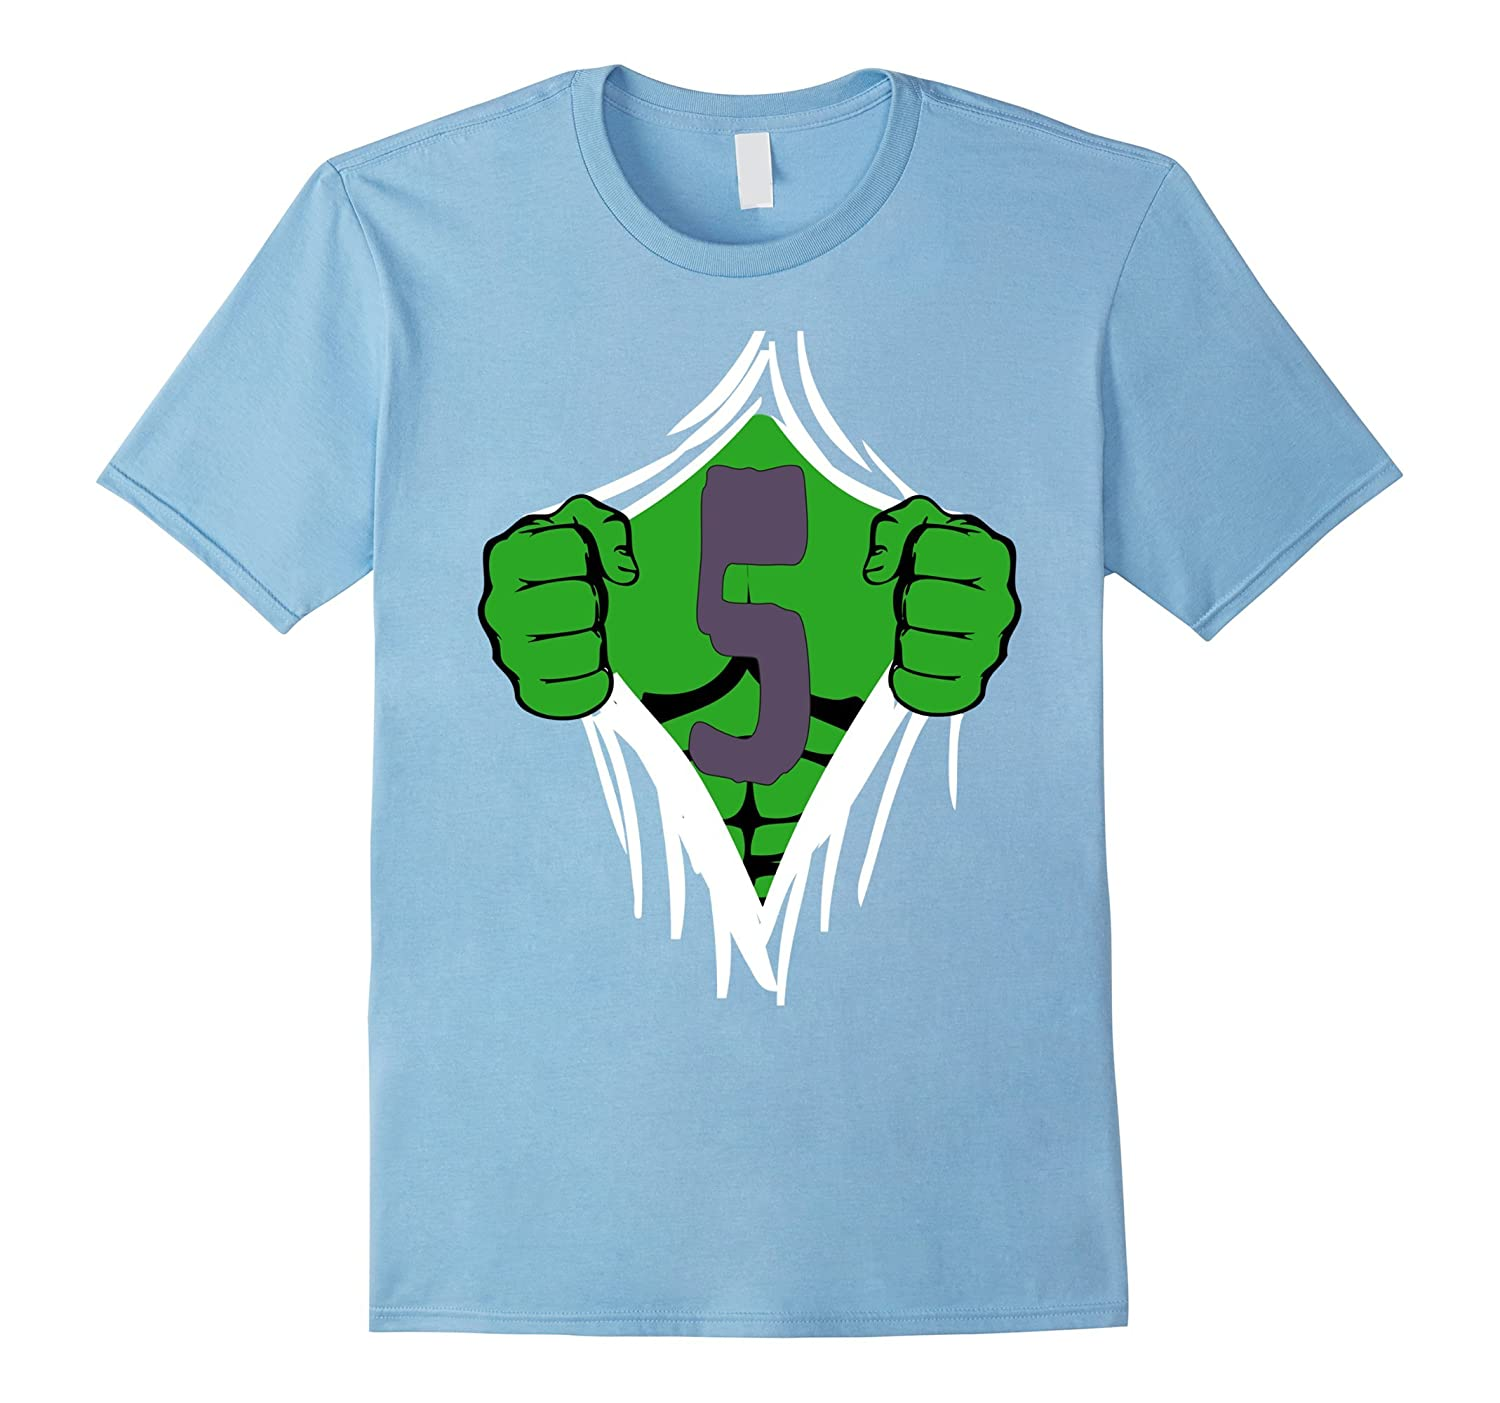 Green Man Chest Superhero Birthday Shirt For 5 Year Old Boys PL